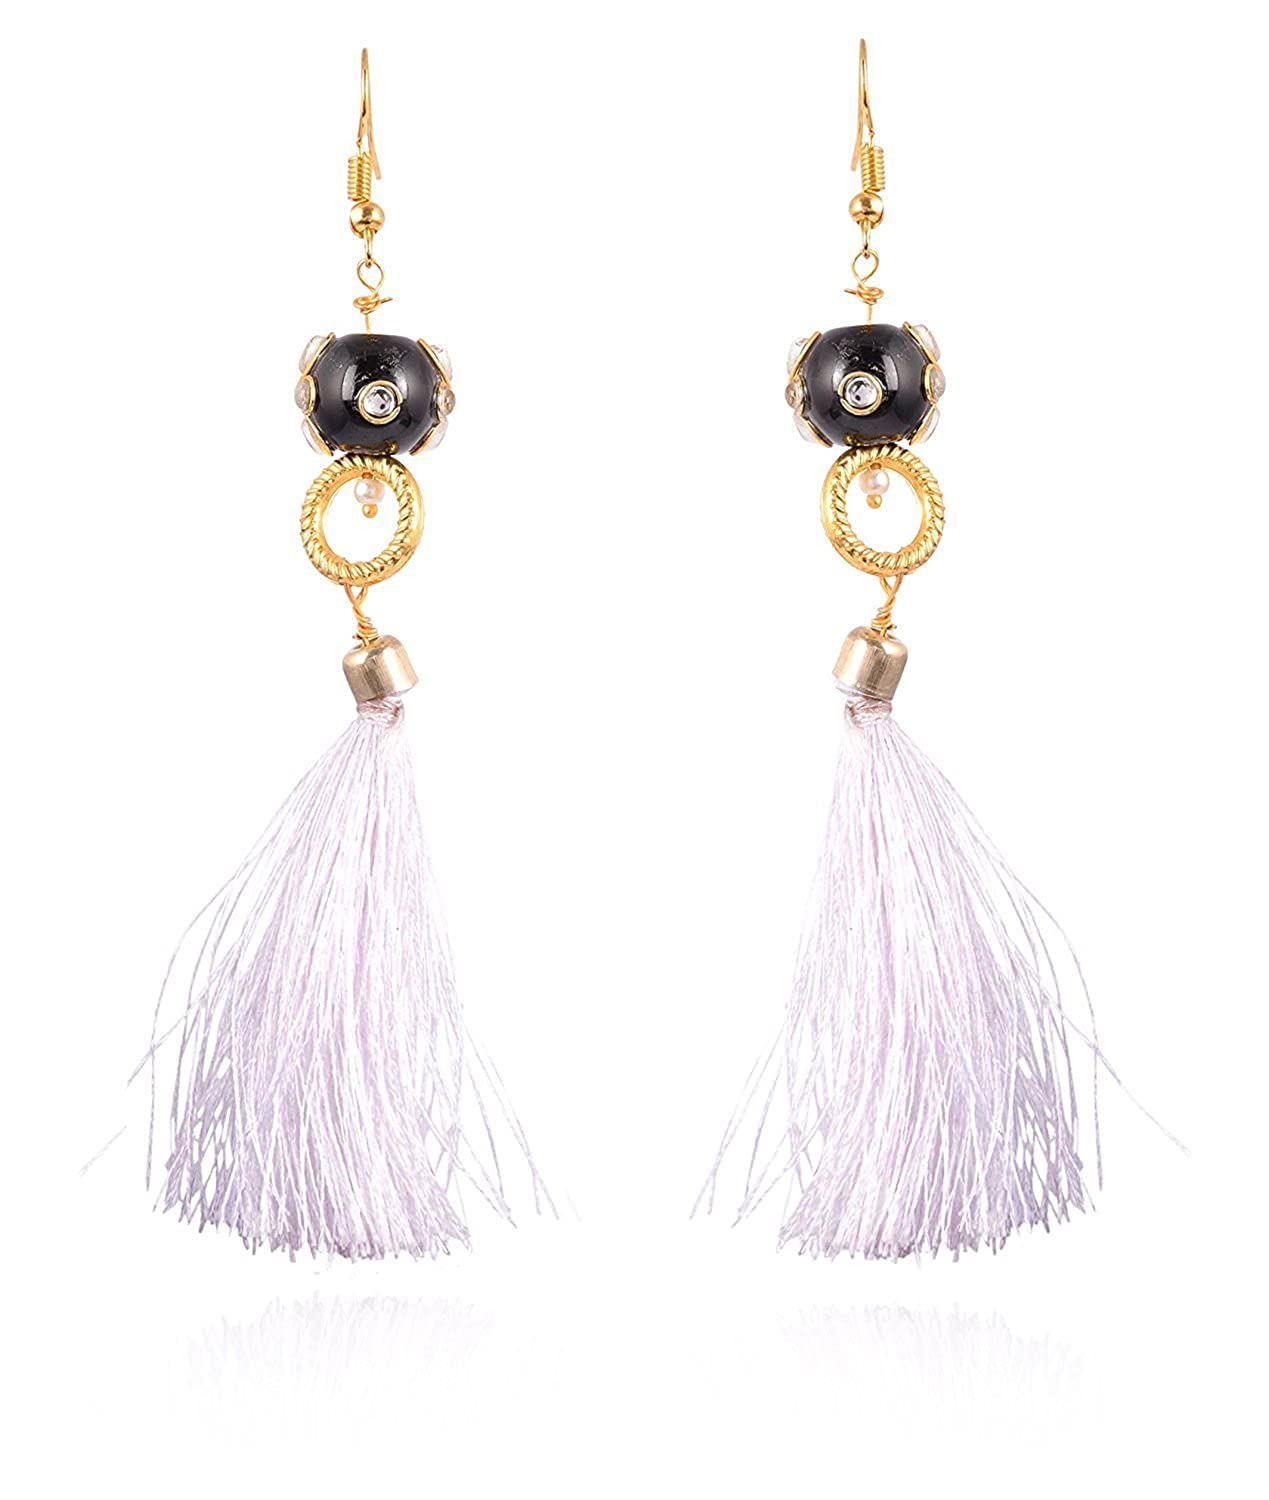 Subharpit White Color Pearl Golden Color Metal Non Precious Indian Ethnic Tratitional Tusel